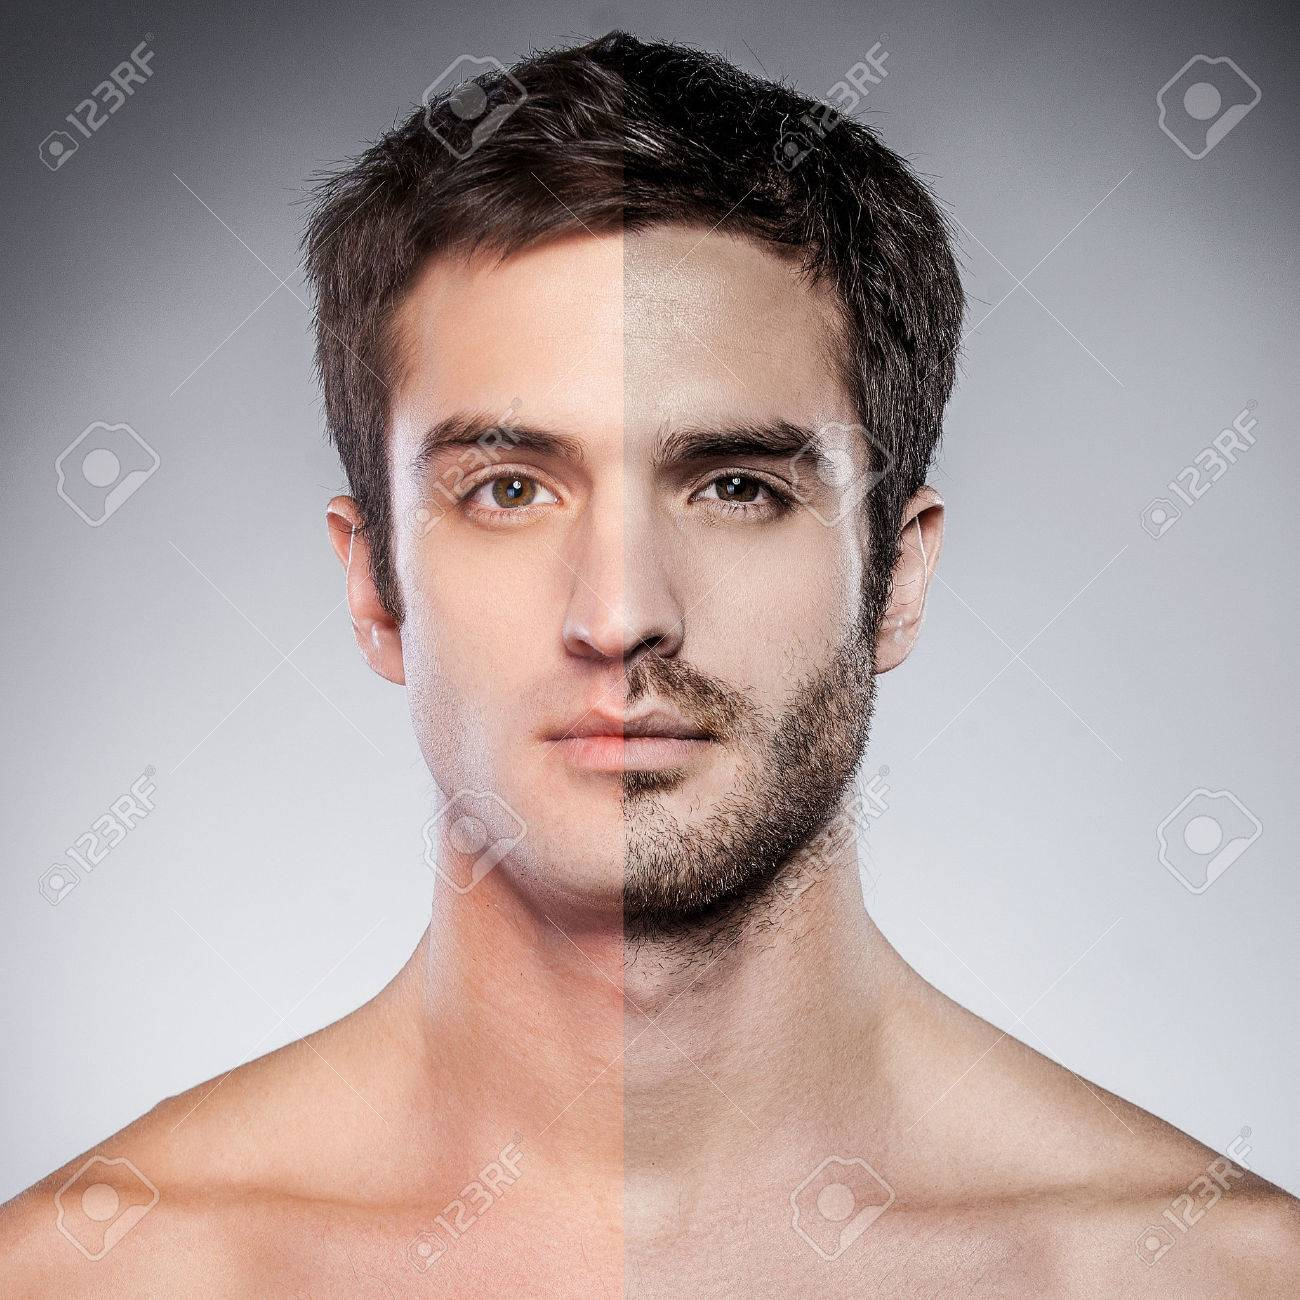 Handsome Young Man With Half Shaved Face Looking At Camera While Standing Against Grey Background Stock